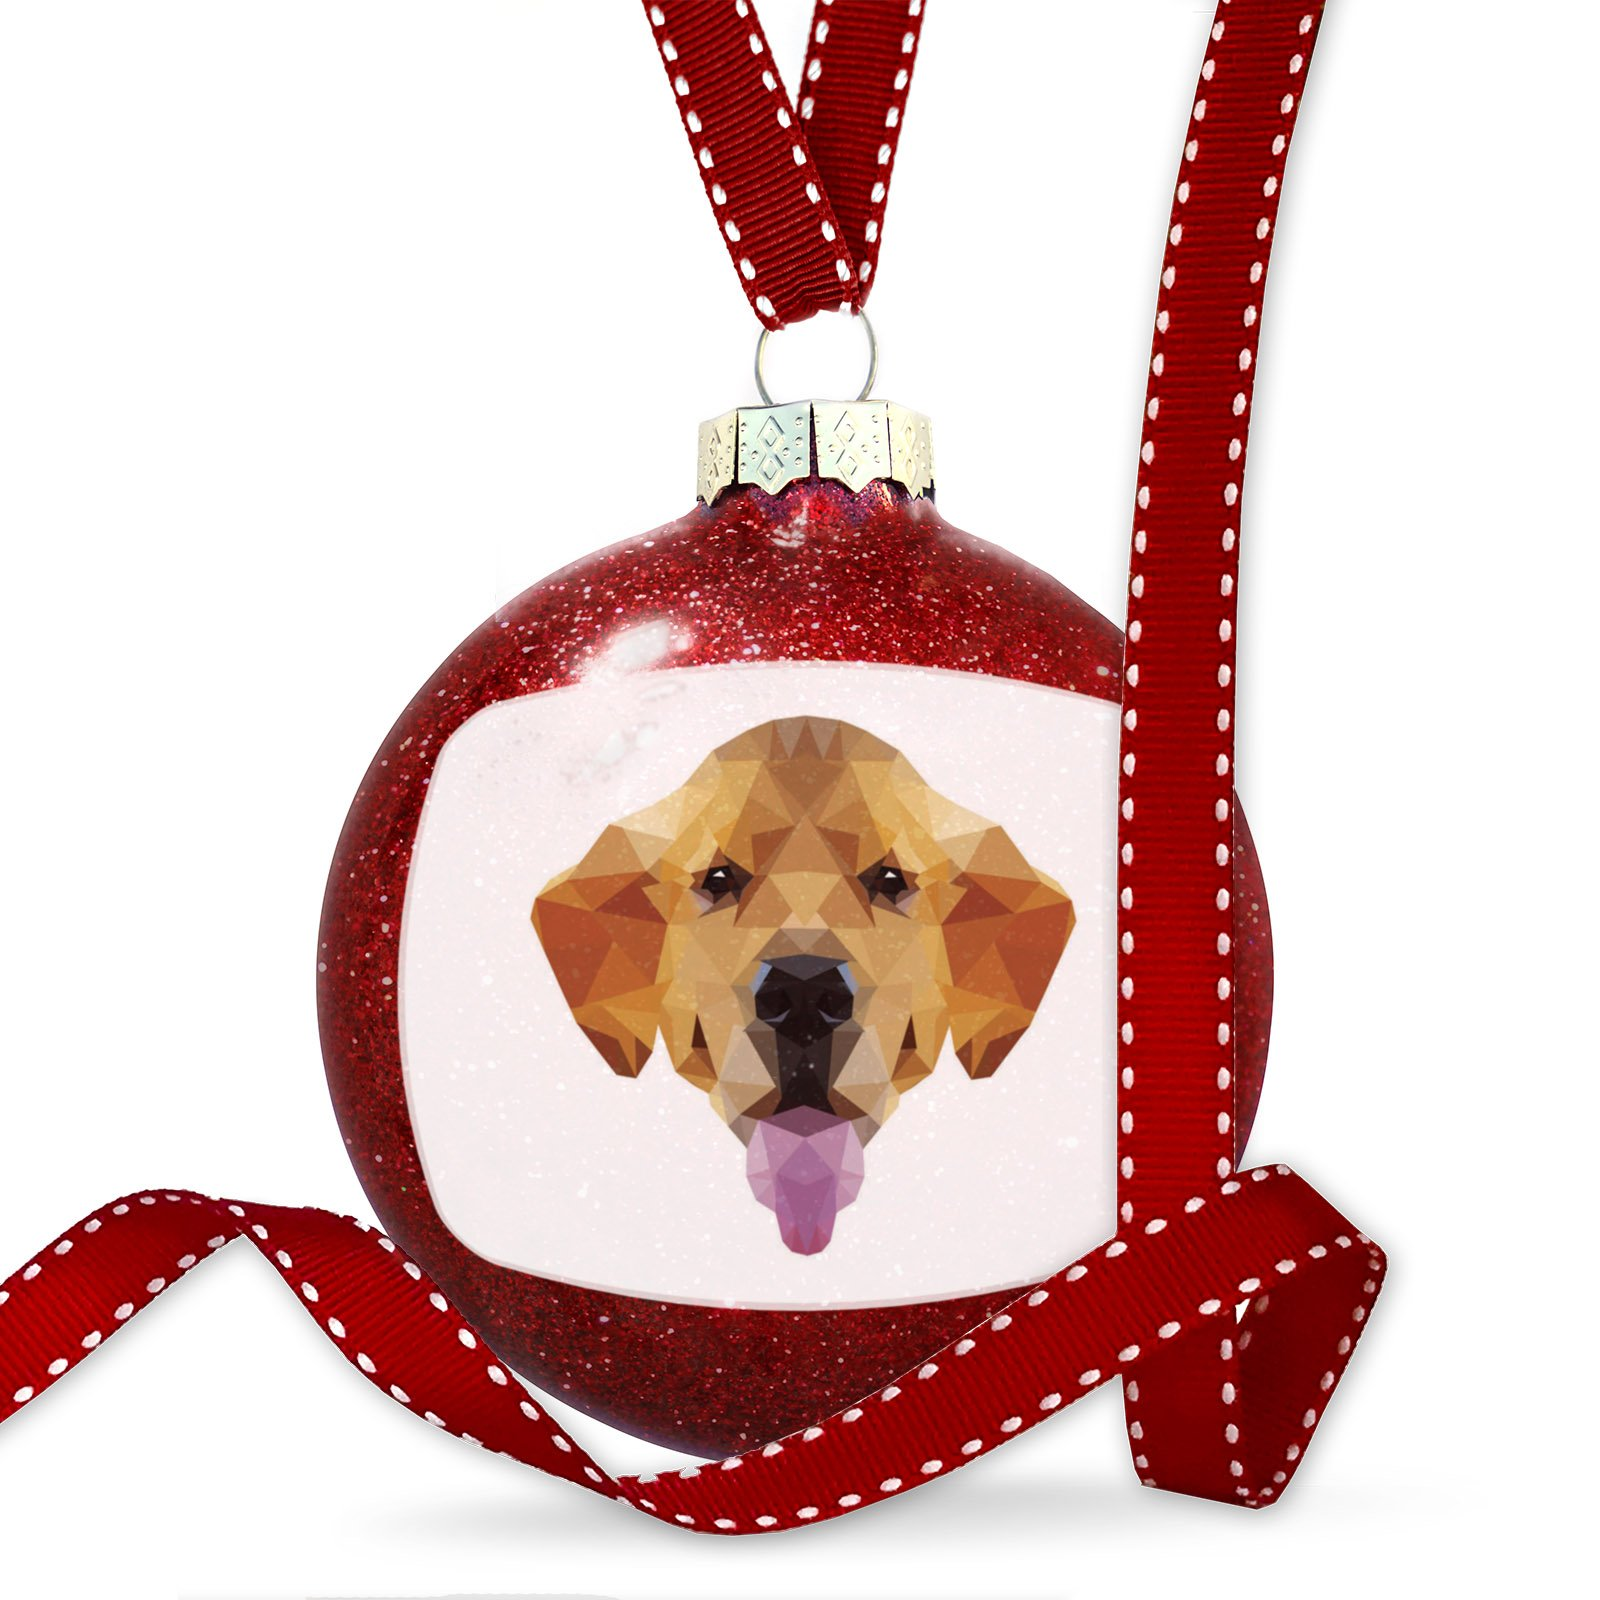 Christmas Decoration Geometric Animal art Golden Retriever Dog Ornament by NEONBLOND